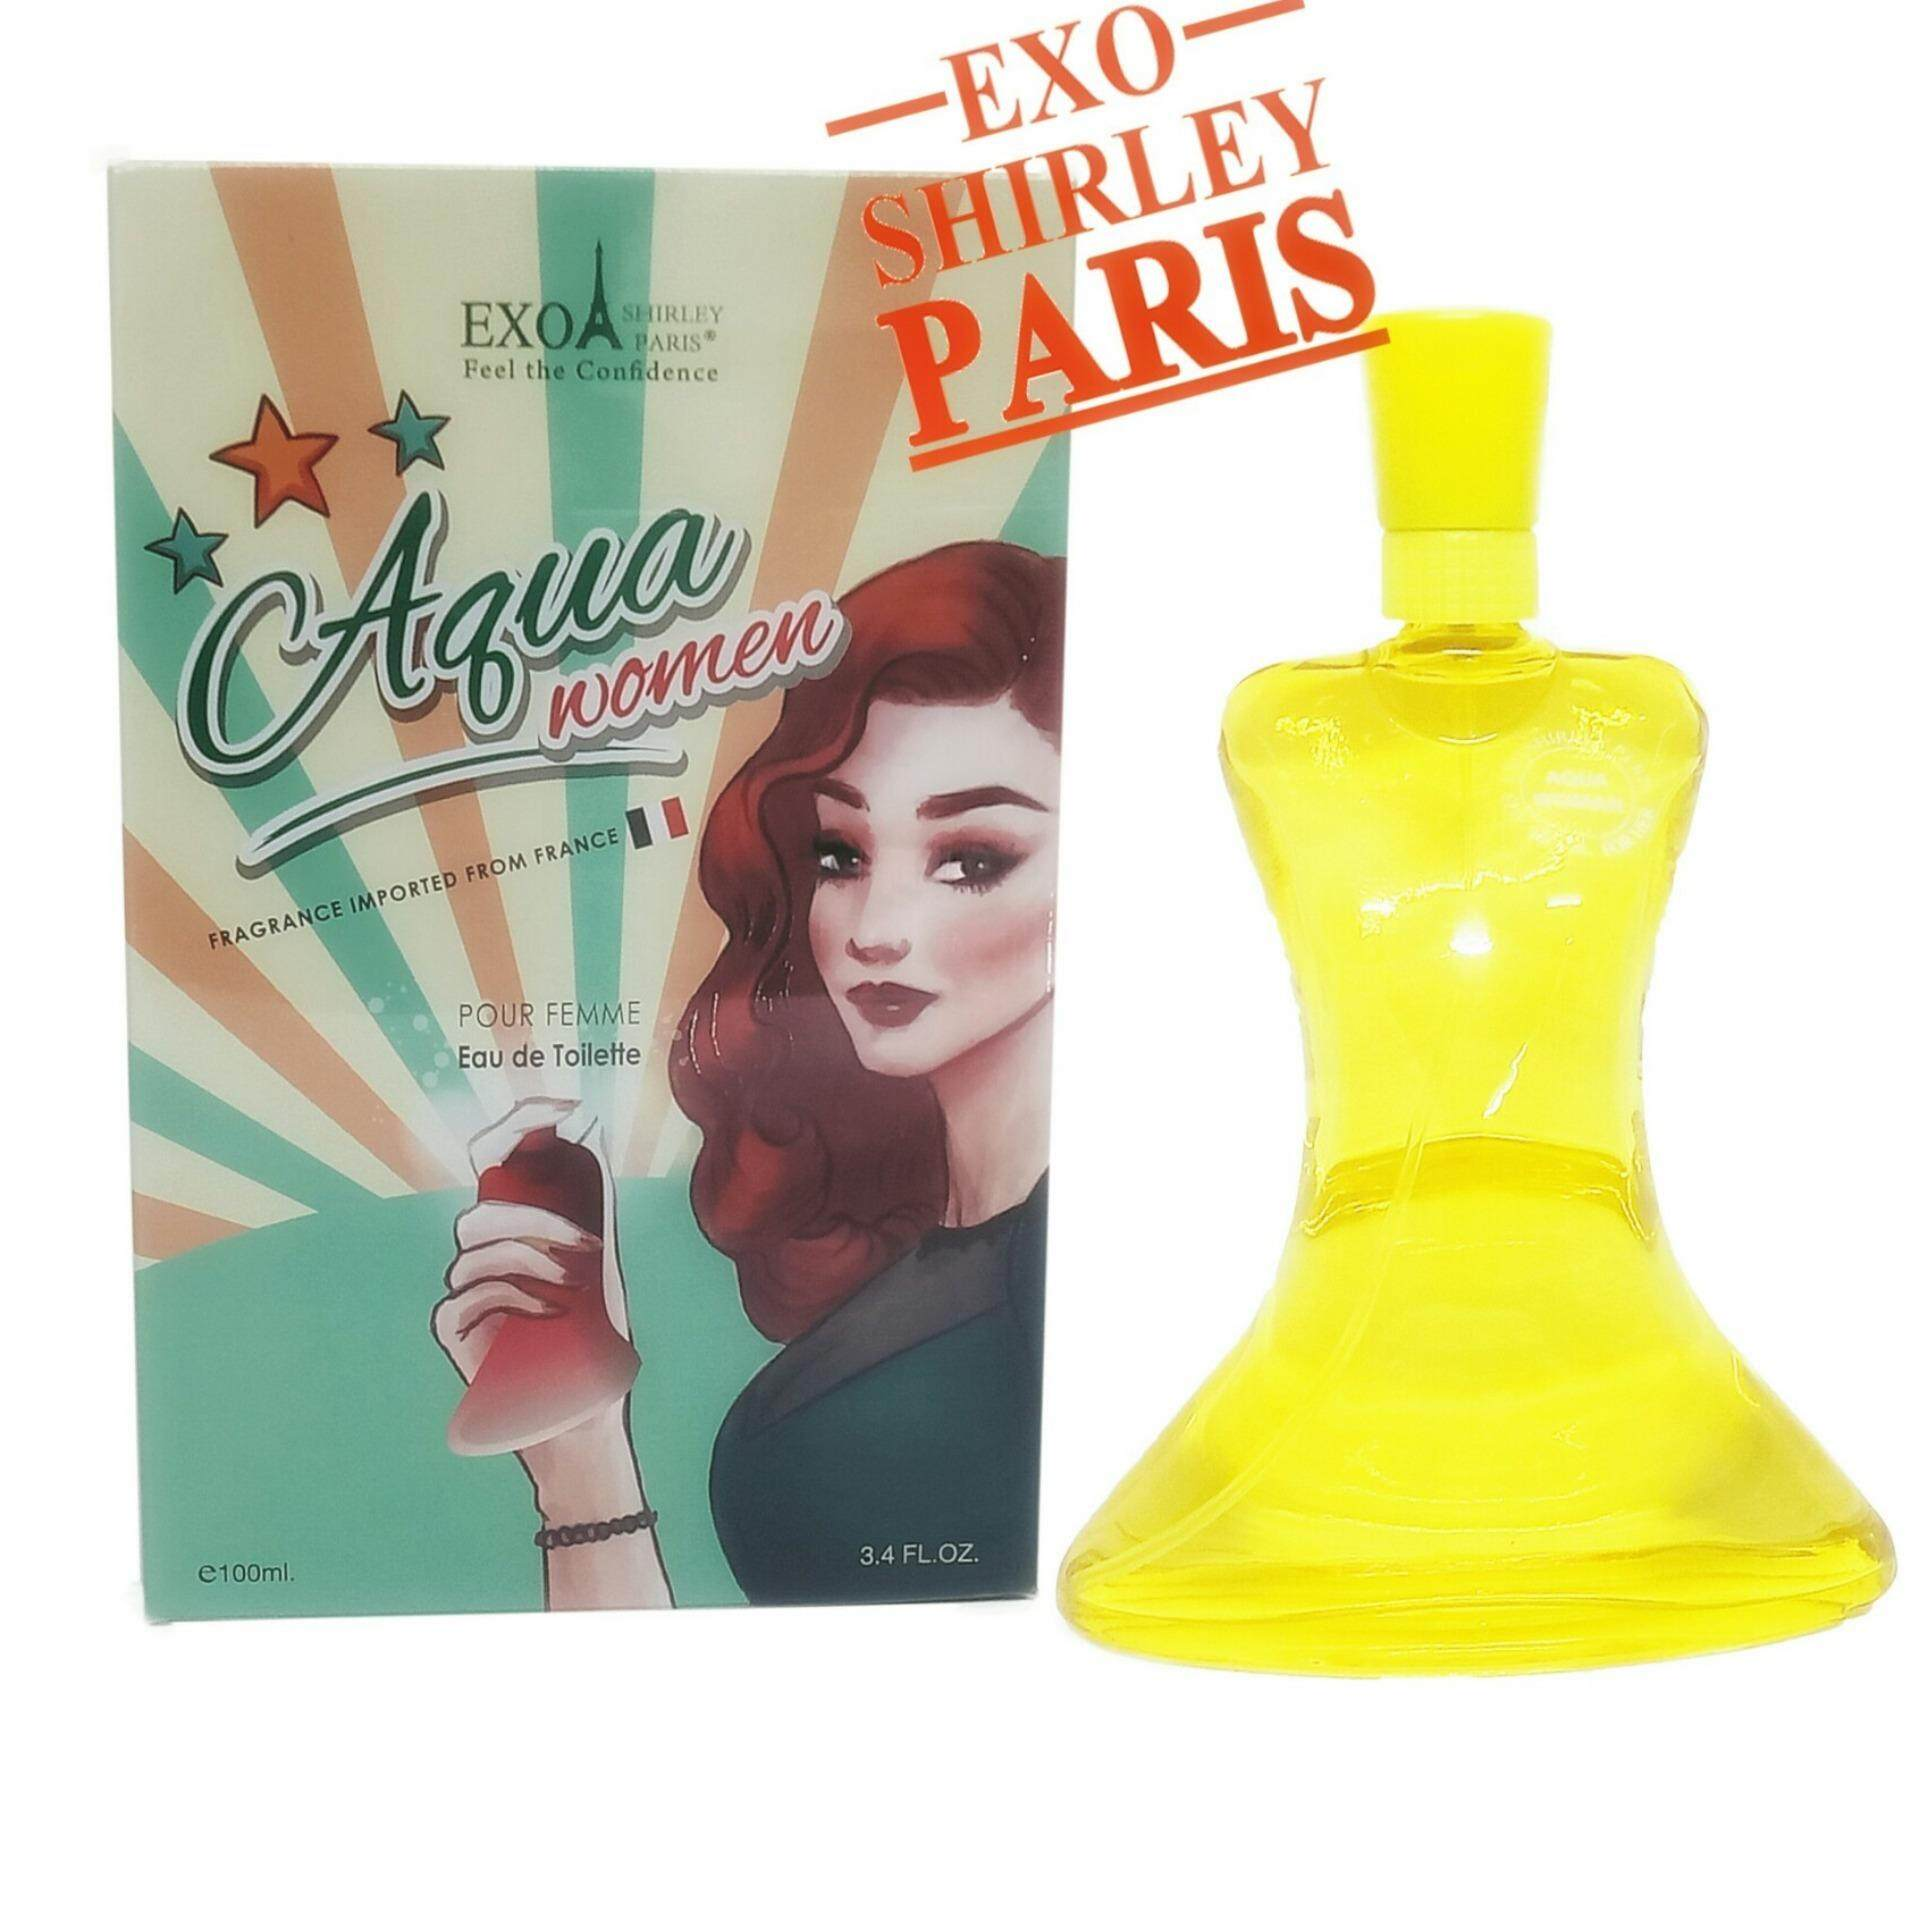 ขาย Marie Pierre Paris Exo Shirley Paris Aqua Woman ถูก